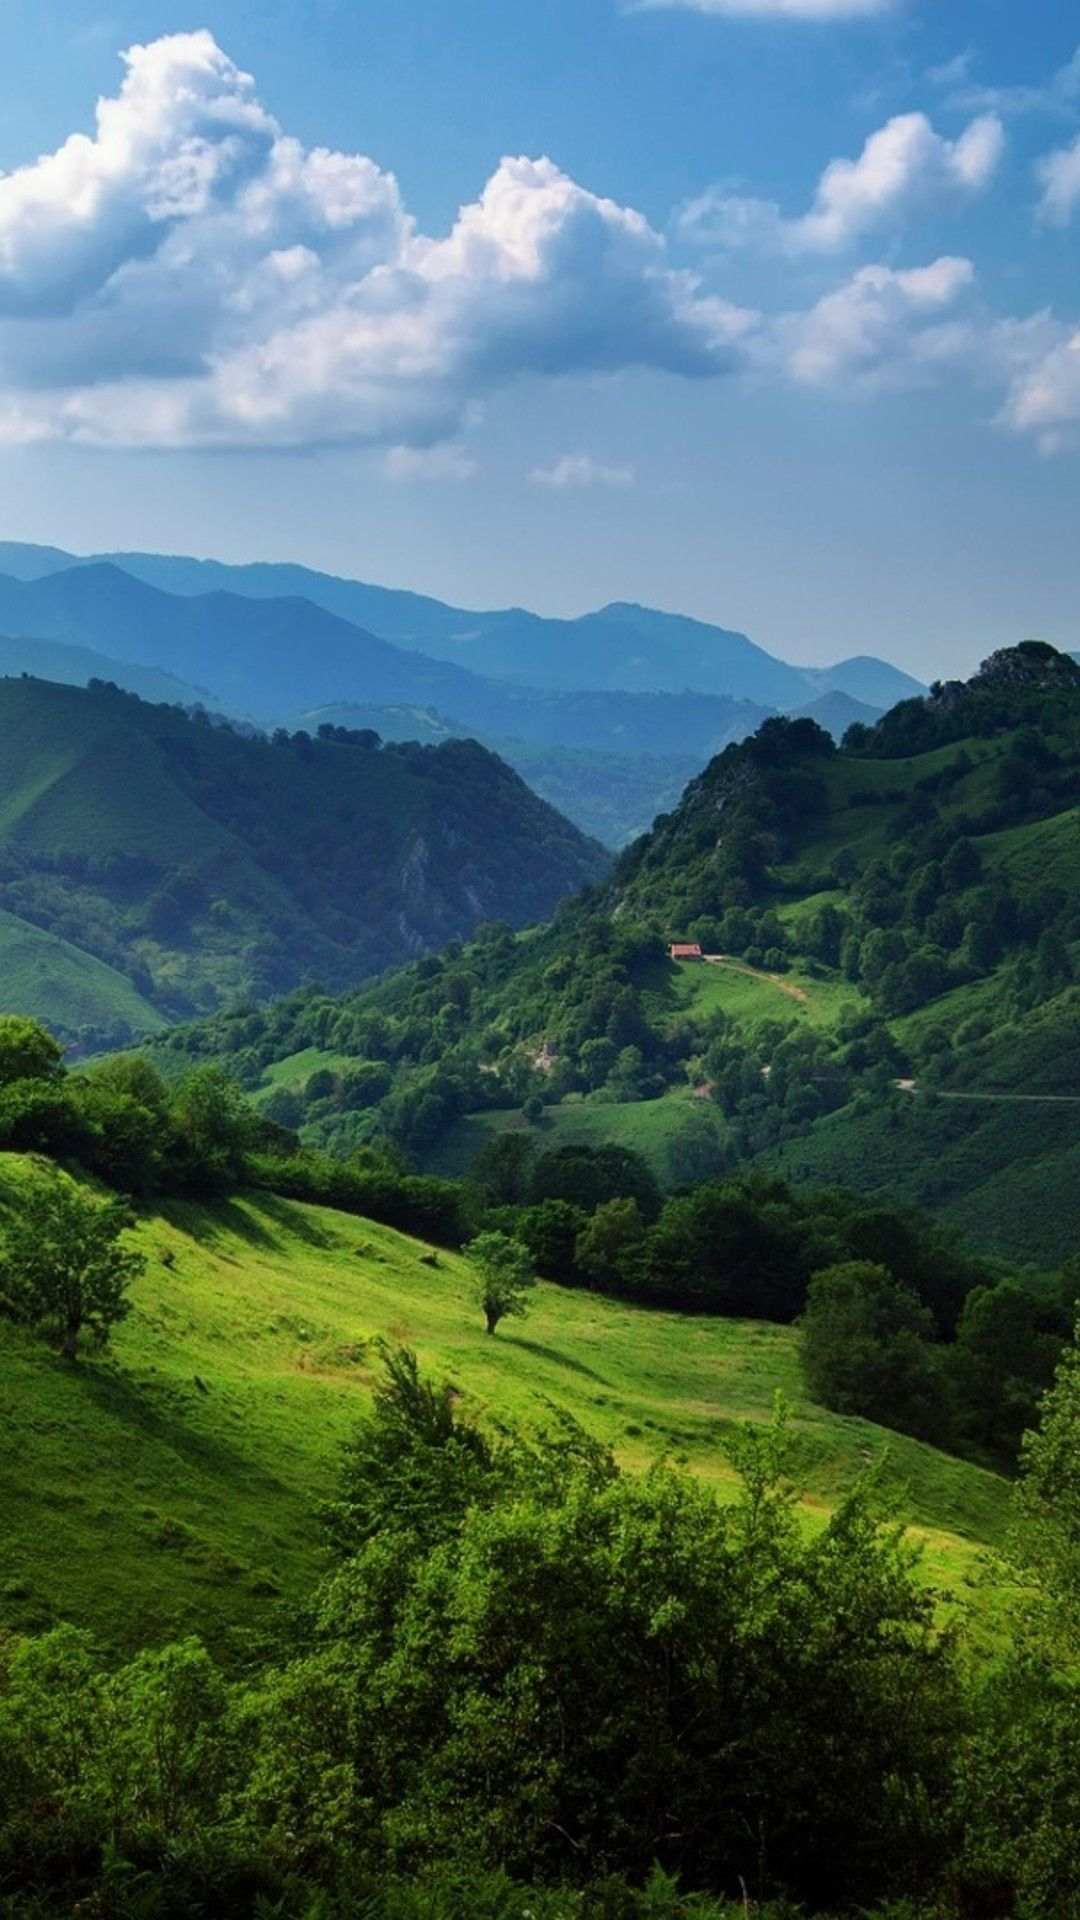 Wallpaper 1080x1920 Cantabrian Mountains - Amazing Green Landscape. Landscapes